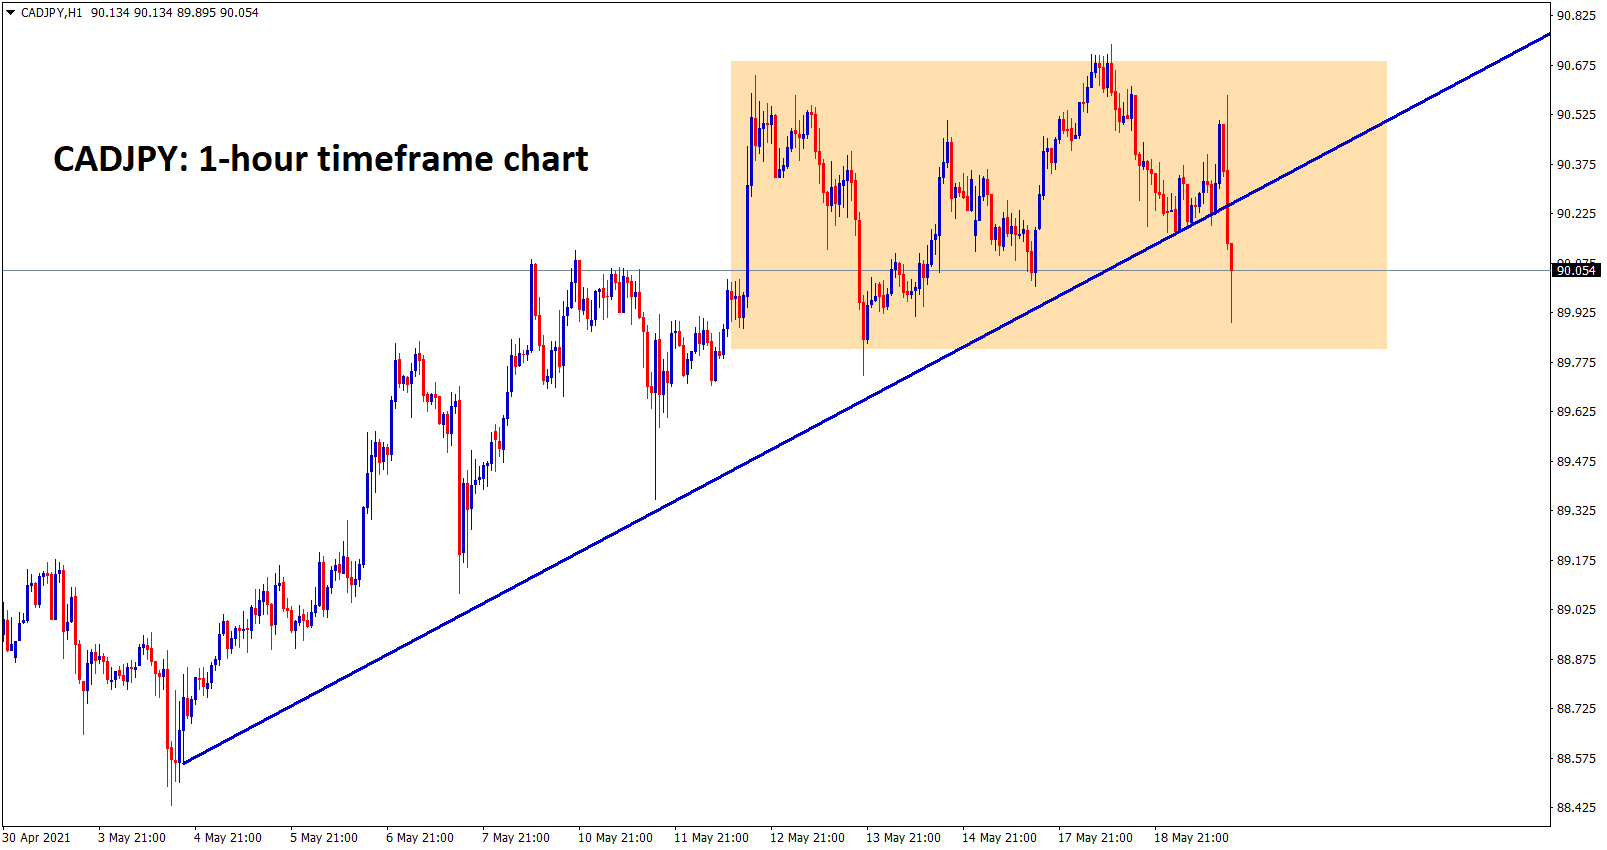 CADJPY is moving in a range and trying to break the bottom of the uptrend line in 1hr